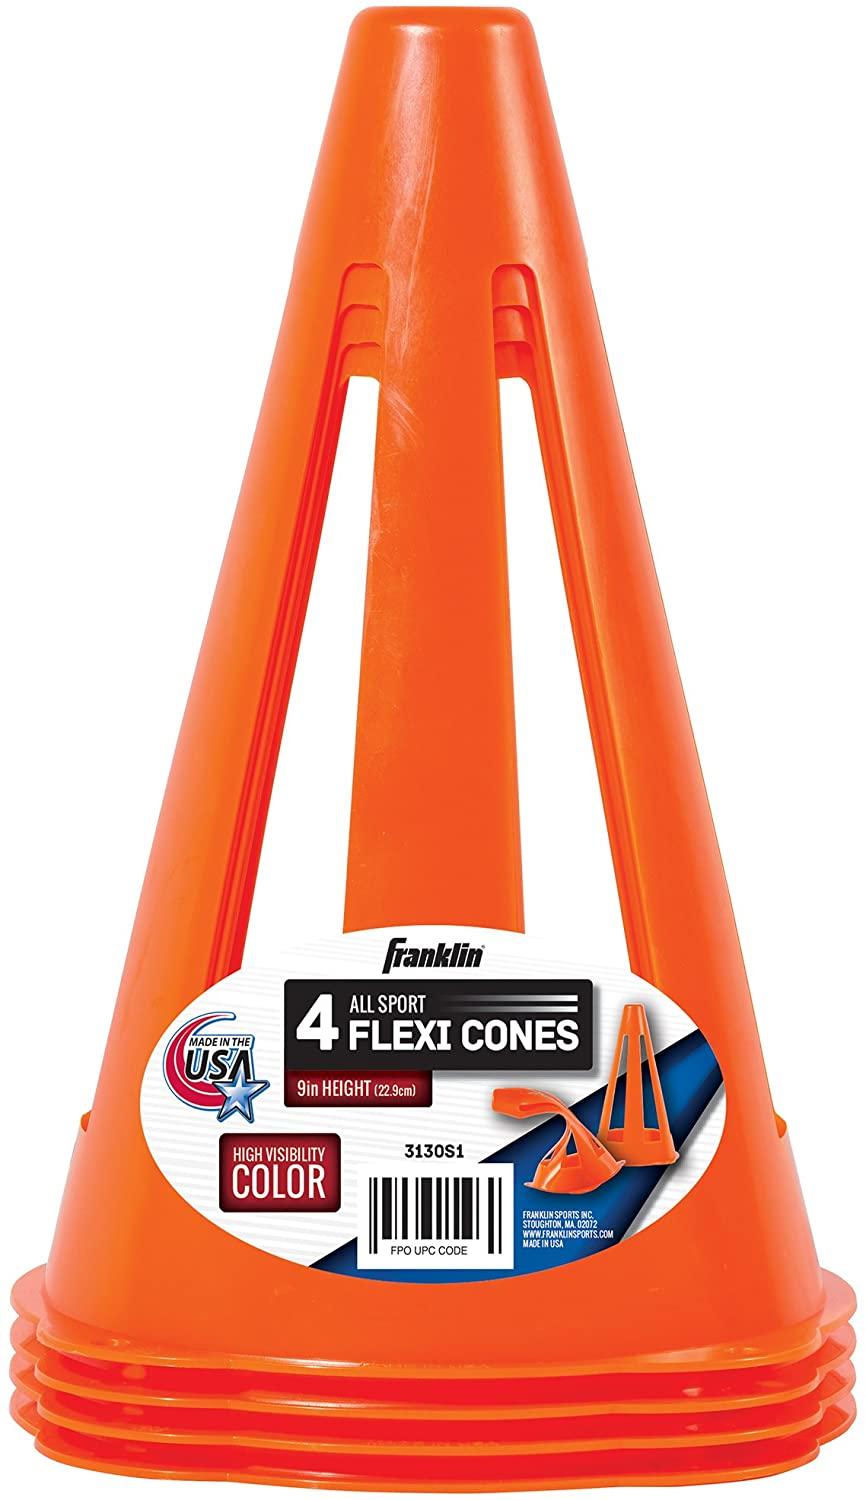 Franklin Orange Flexi Cones